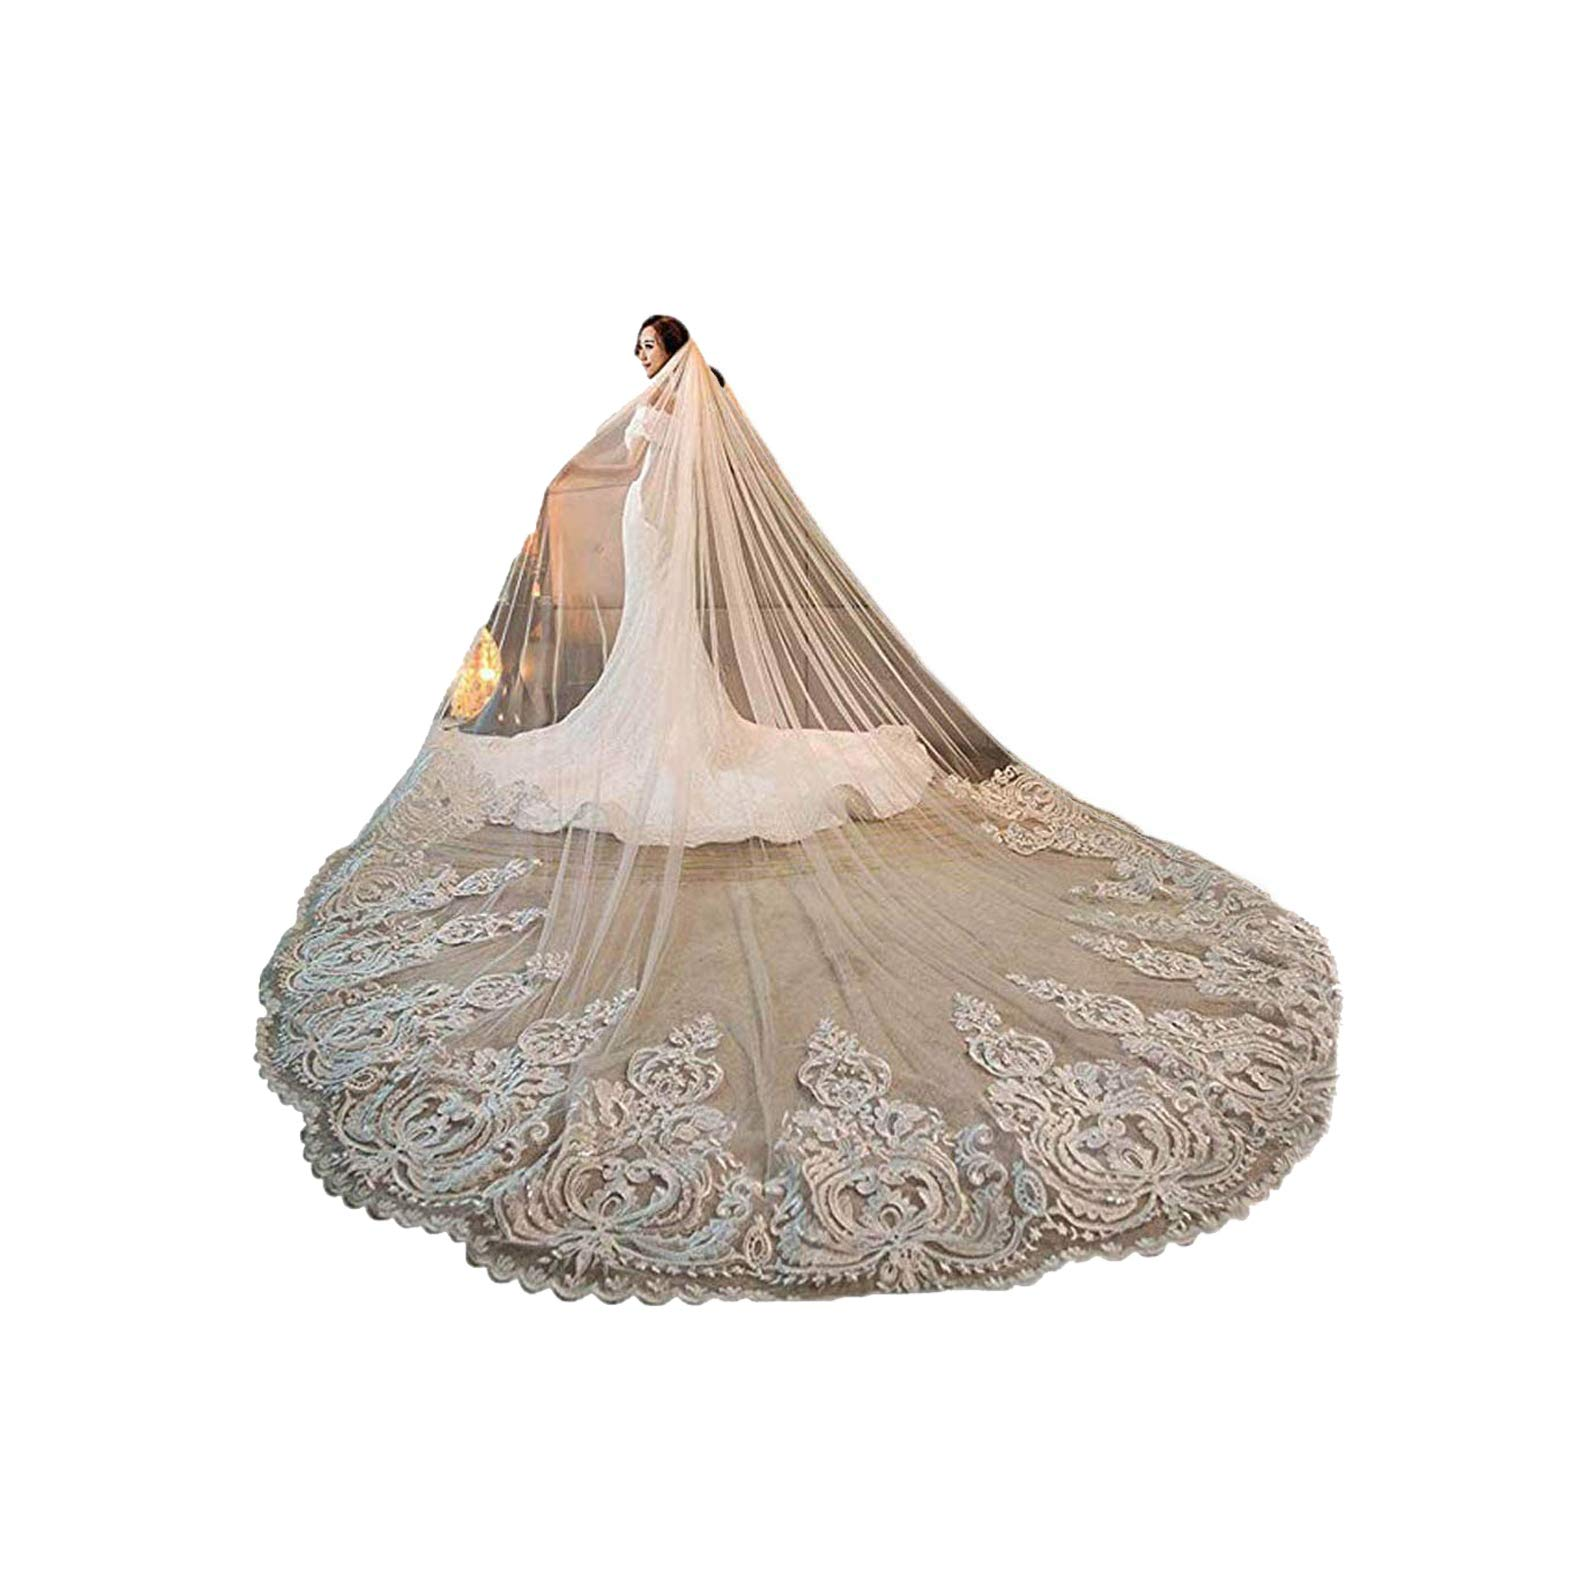 Women's 3M 3.5M 4M 1T Lace Applique Chapel Cathedral Bridal Veil With Free Comb (Ivory, 4M Length) by Pretydress